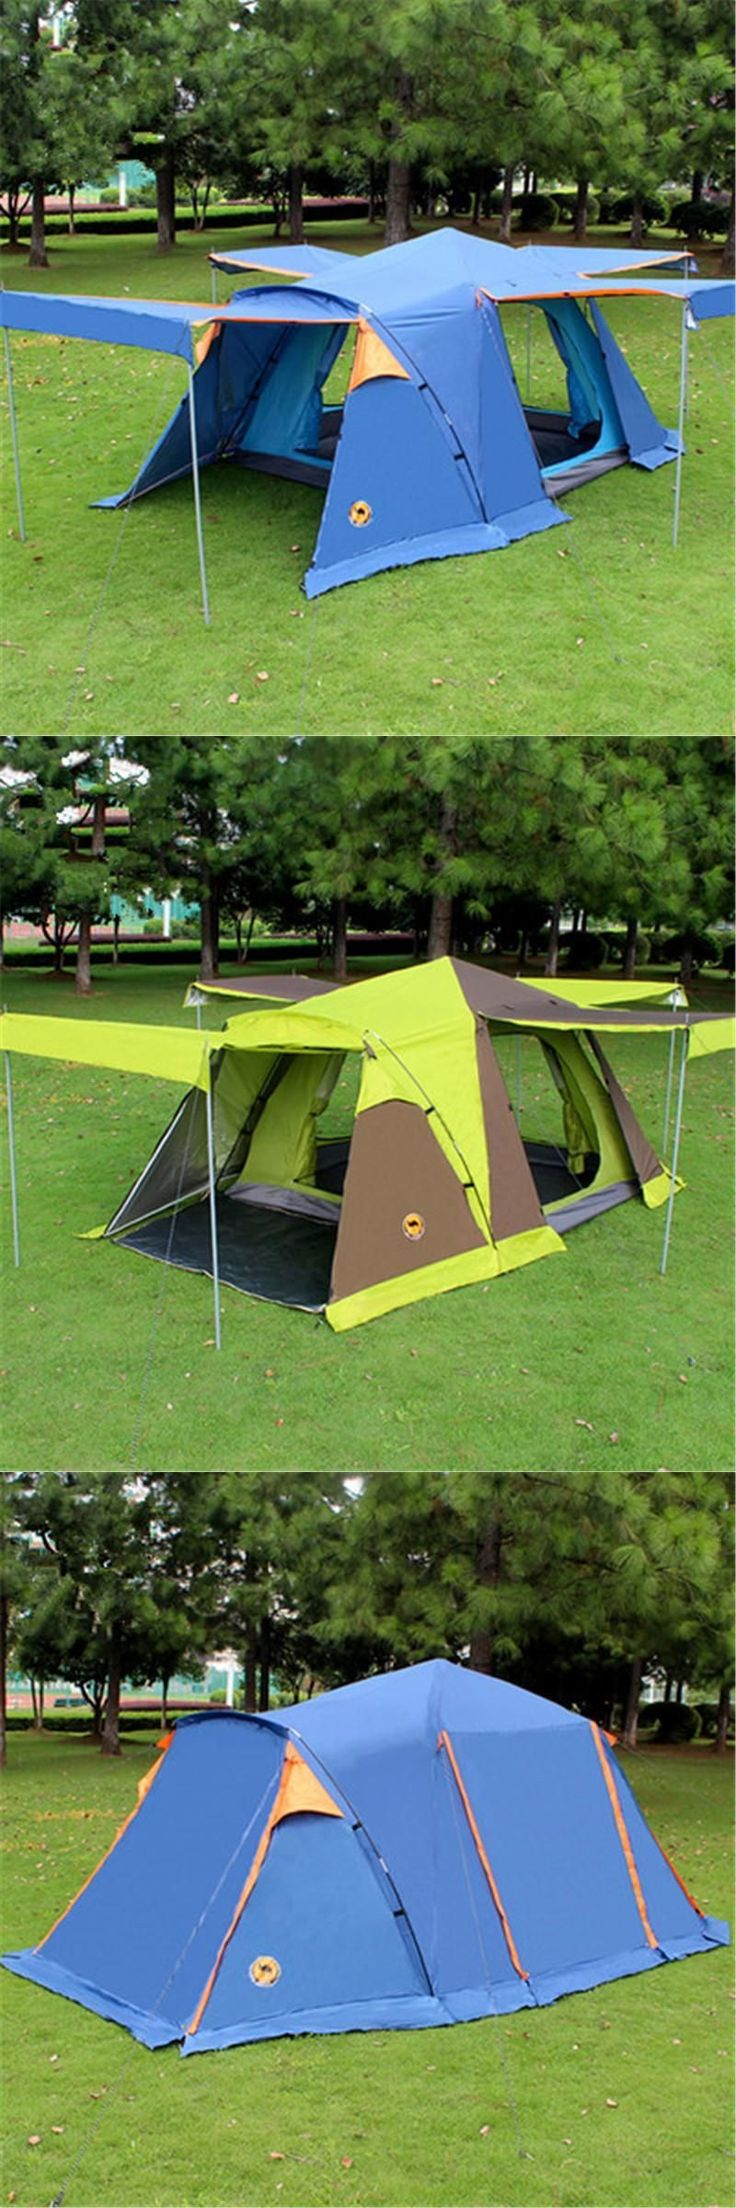 [Visit to Buy] Camel 3-4 person large family tent camping tent sun shelter gazebo beach tent for Advertising/exhibition #Advertisement